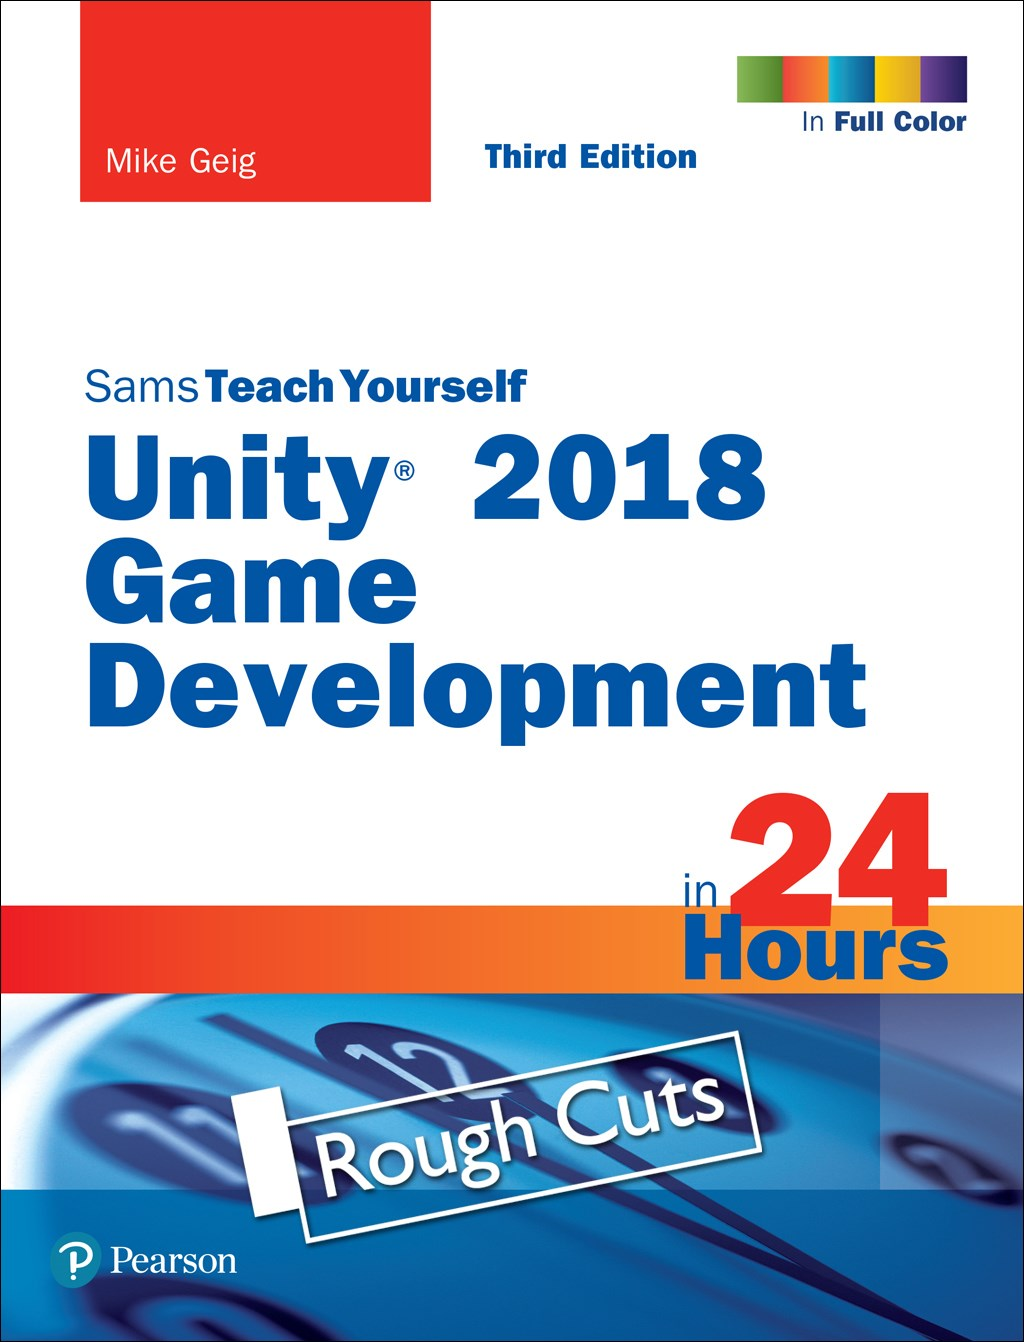 Unity 2018 Game Development in 24 Hours, Sams Teach Yourself,Rough Cuts, 3rd Edition